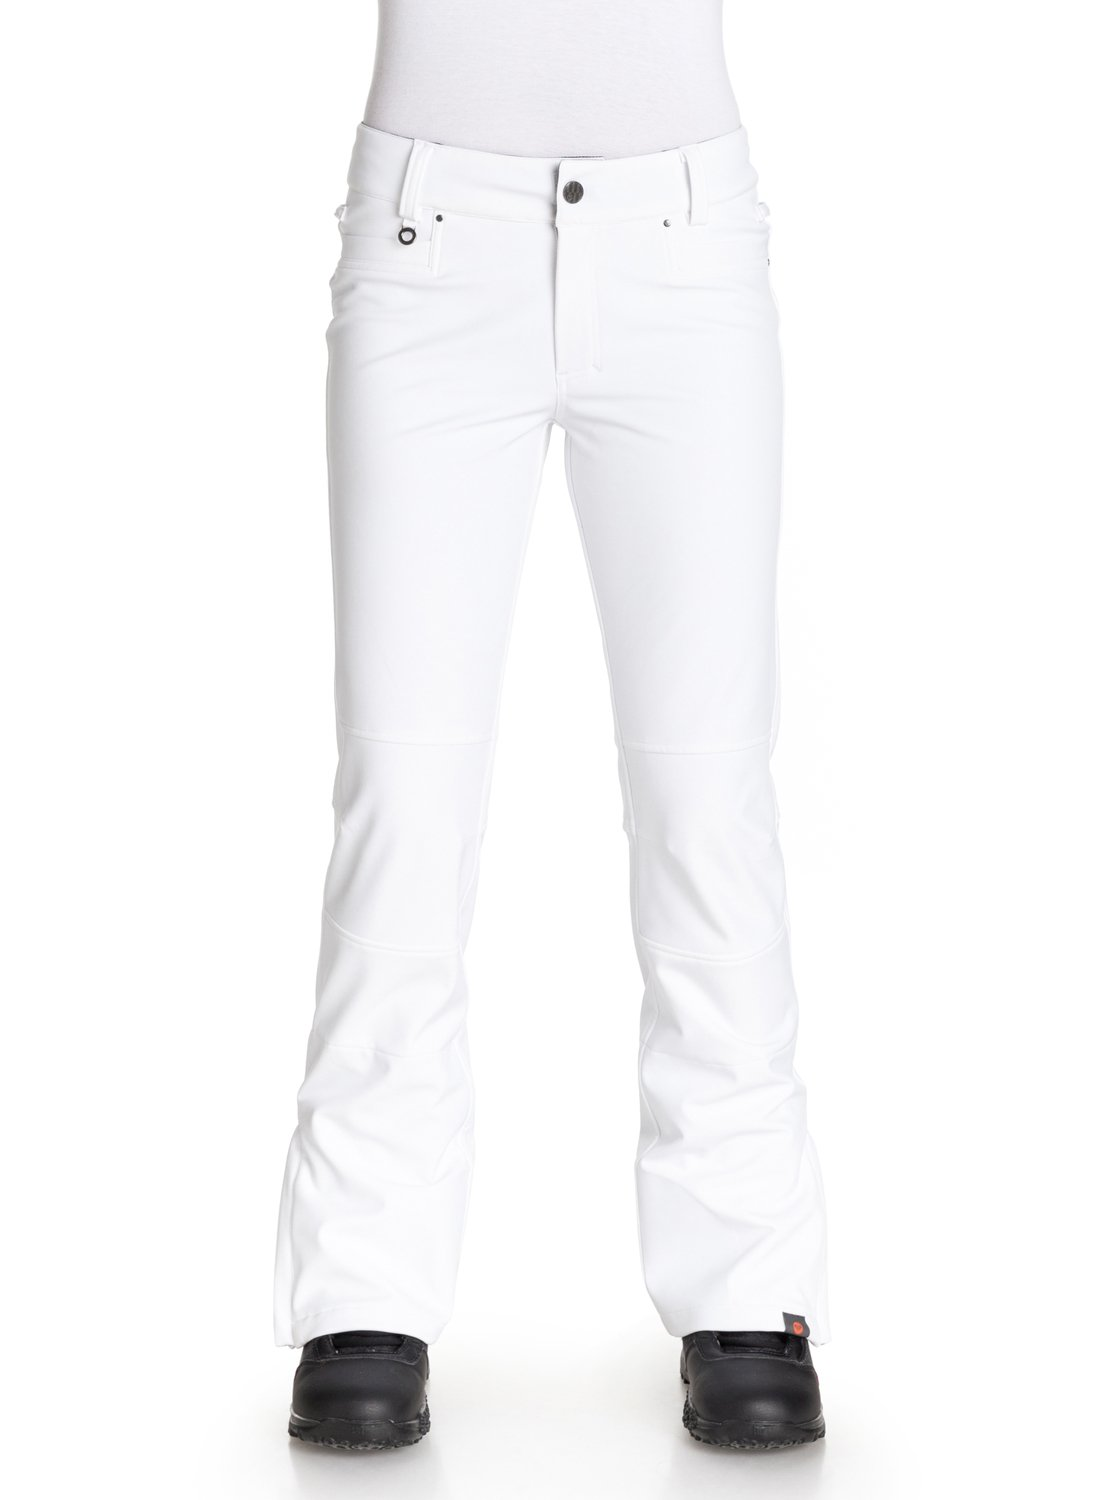 Roxy SNOW Women's Creek Softshell Fitted Pant